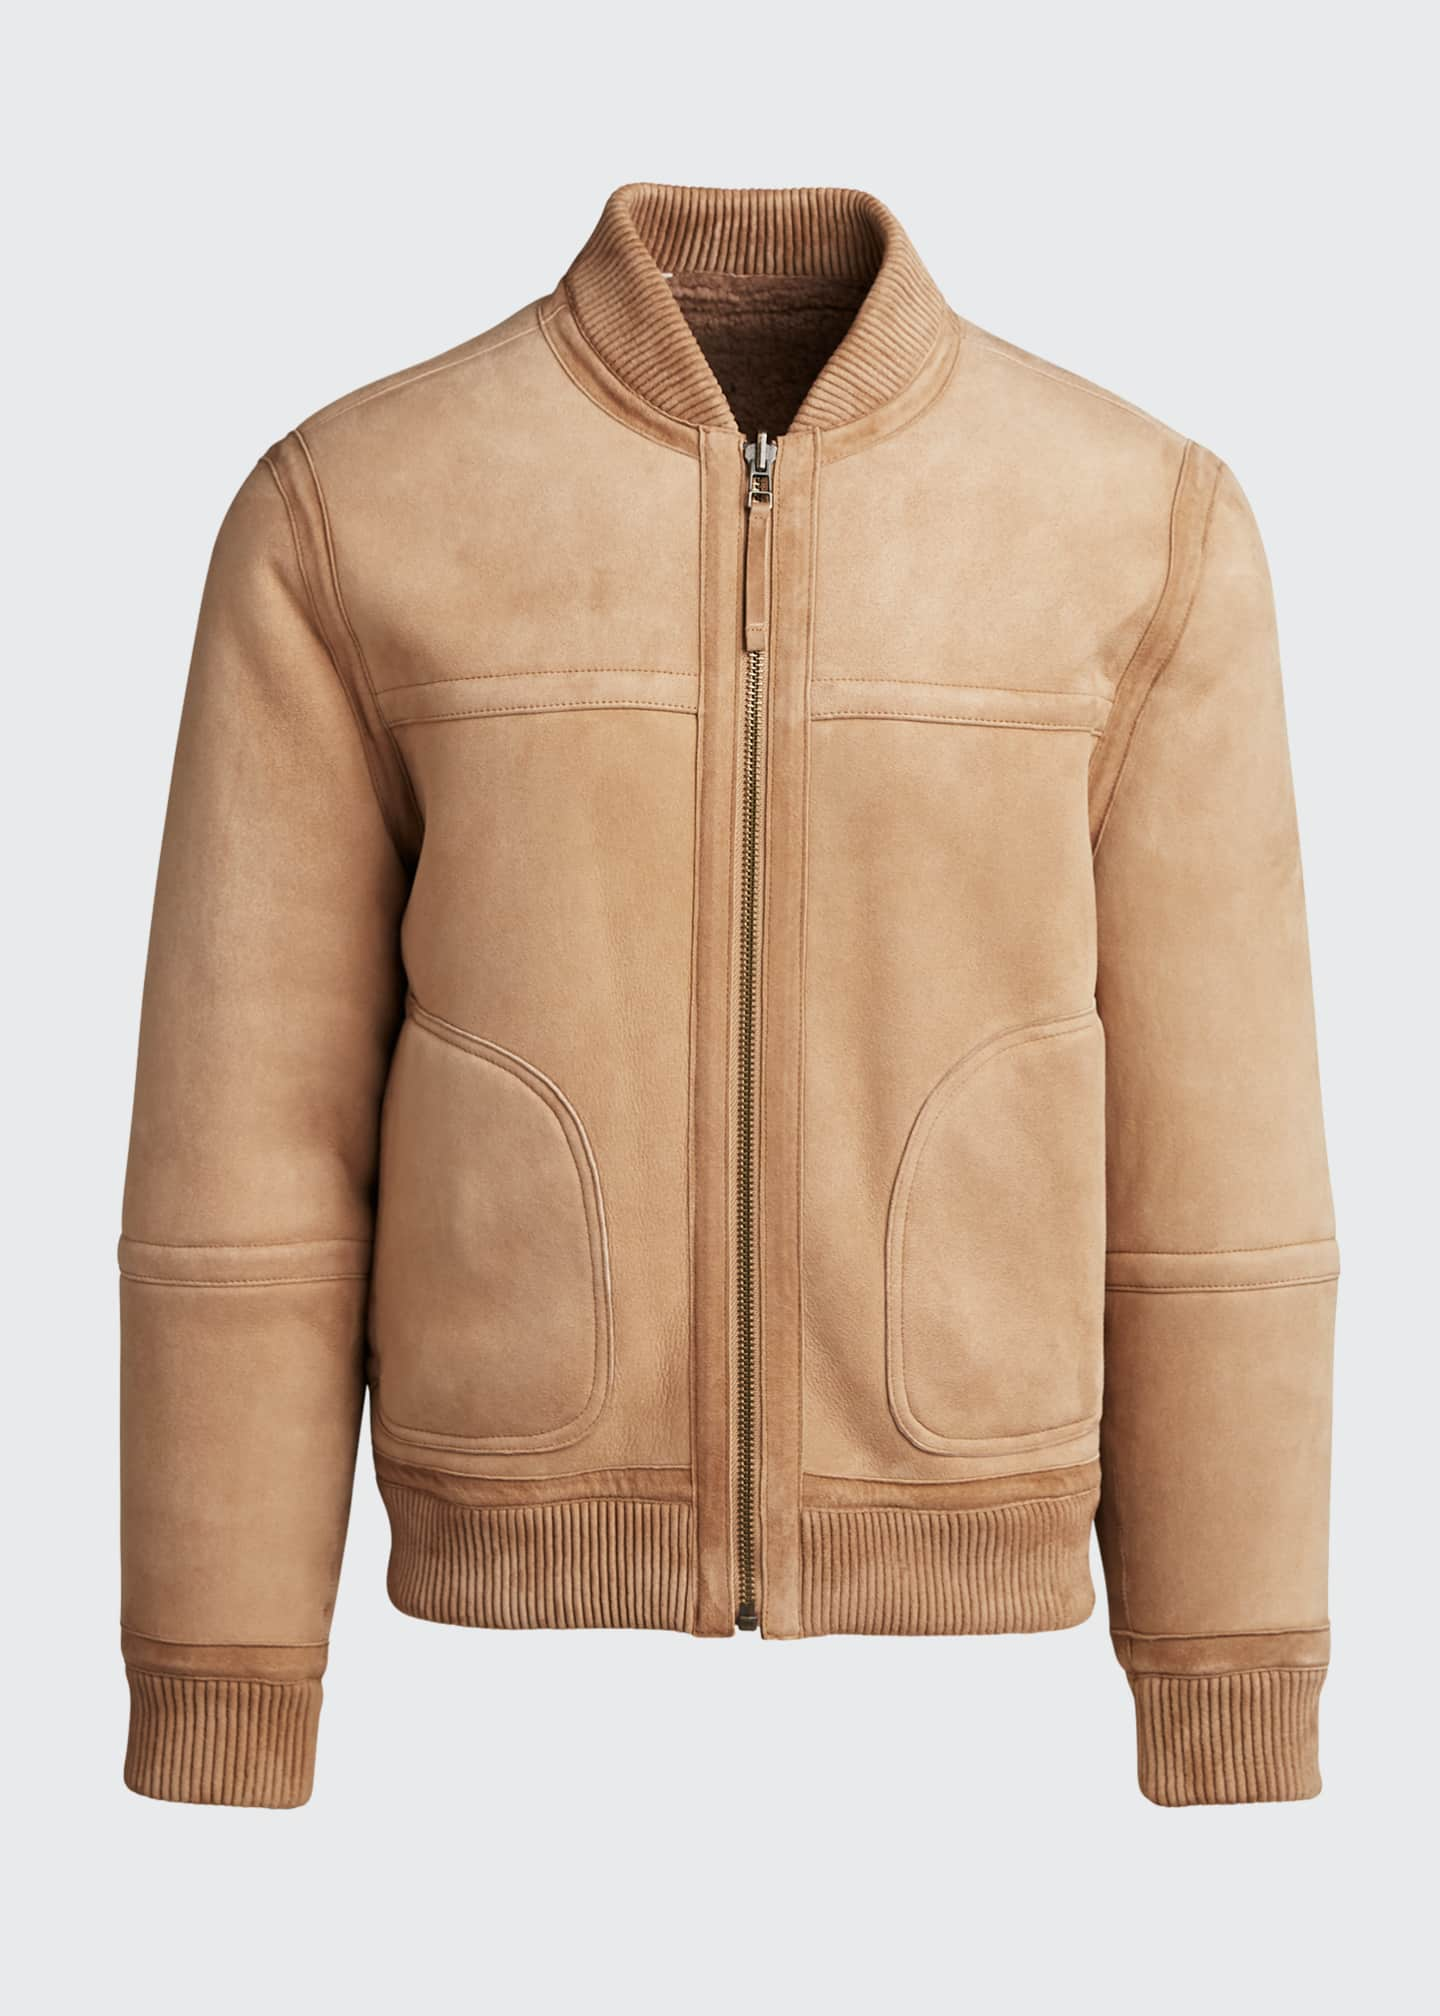 Image 5 of 5: Men's Reversible Shearling Bomber Jacket